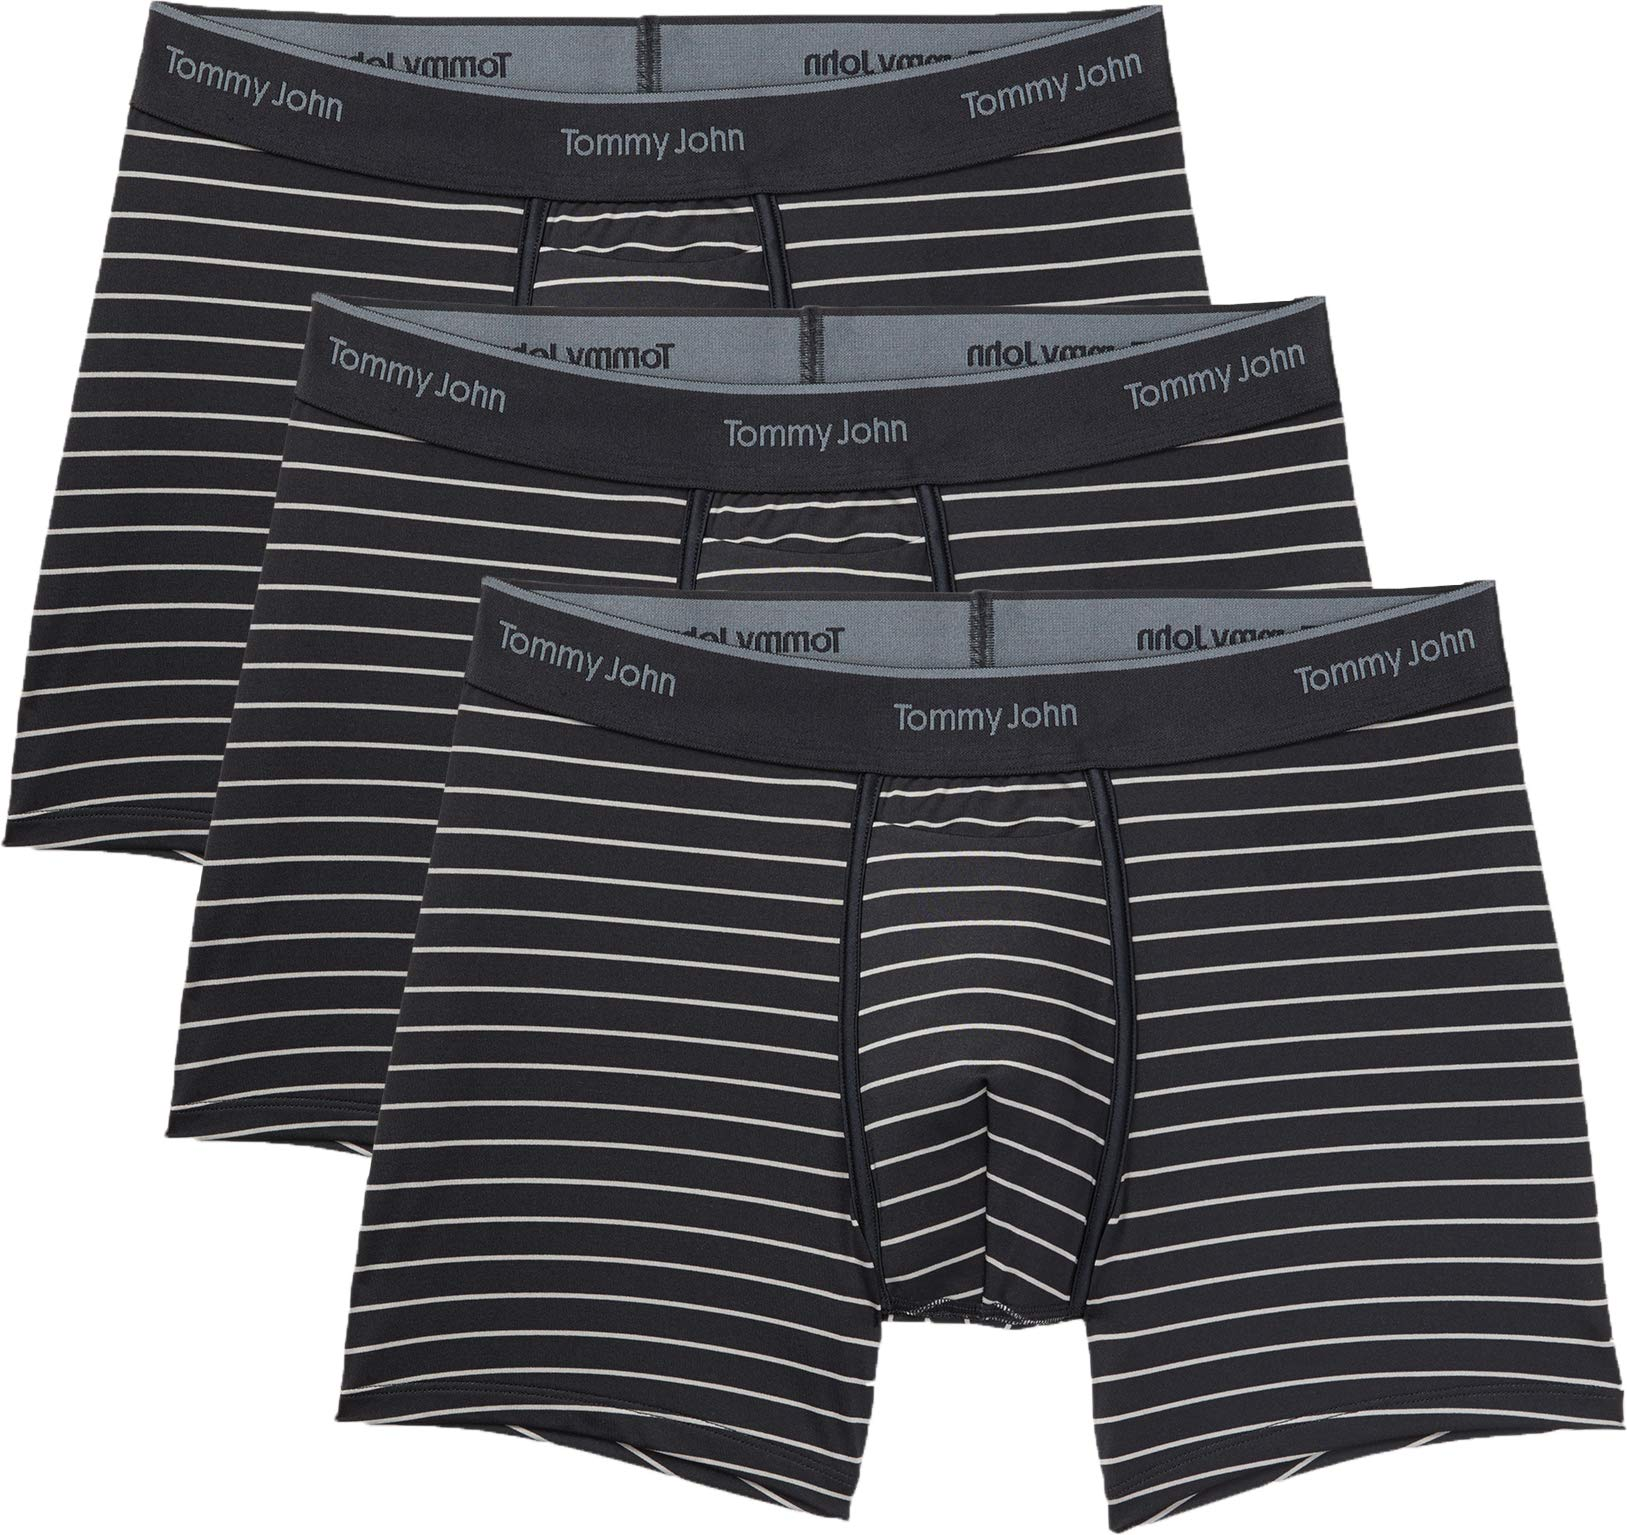 Tommy John Men's Go Anywhere Trunks - 3 Pack - Comfortable Breathable Striped Underwear for Men (Black Minimal, Large) by Tommy John